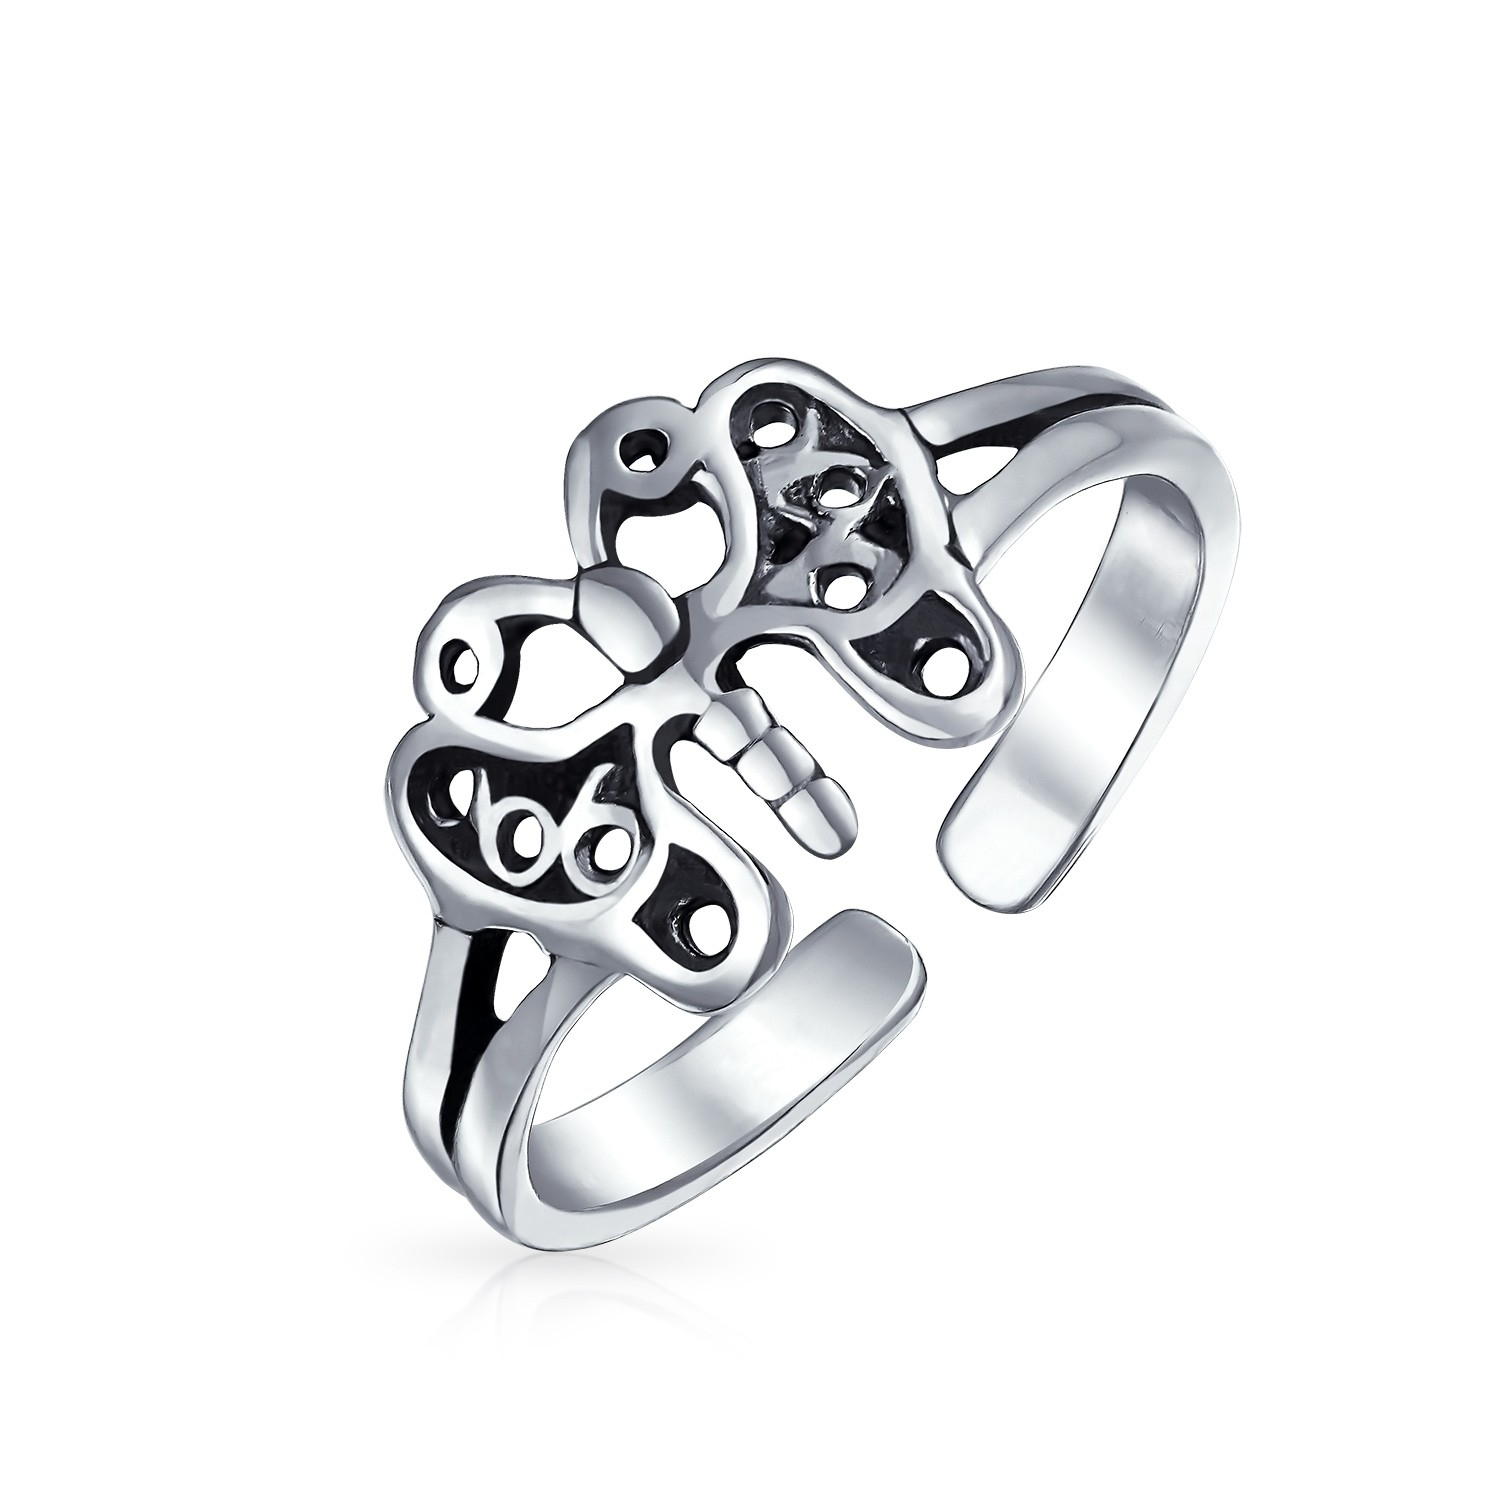 Filigree Butterfly Toe Ring Adjustable Sterling Silver Midi Rings Throughout Most Current Platinum Toe Rings (View 4 of 15)